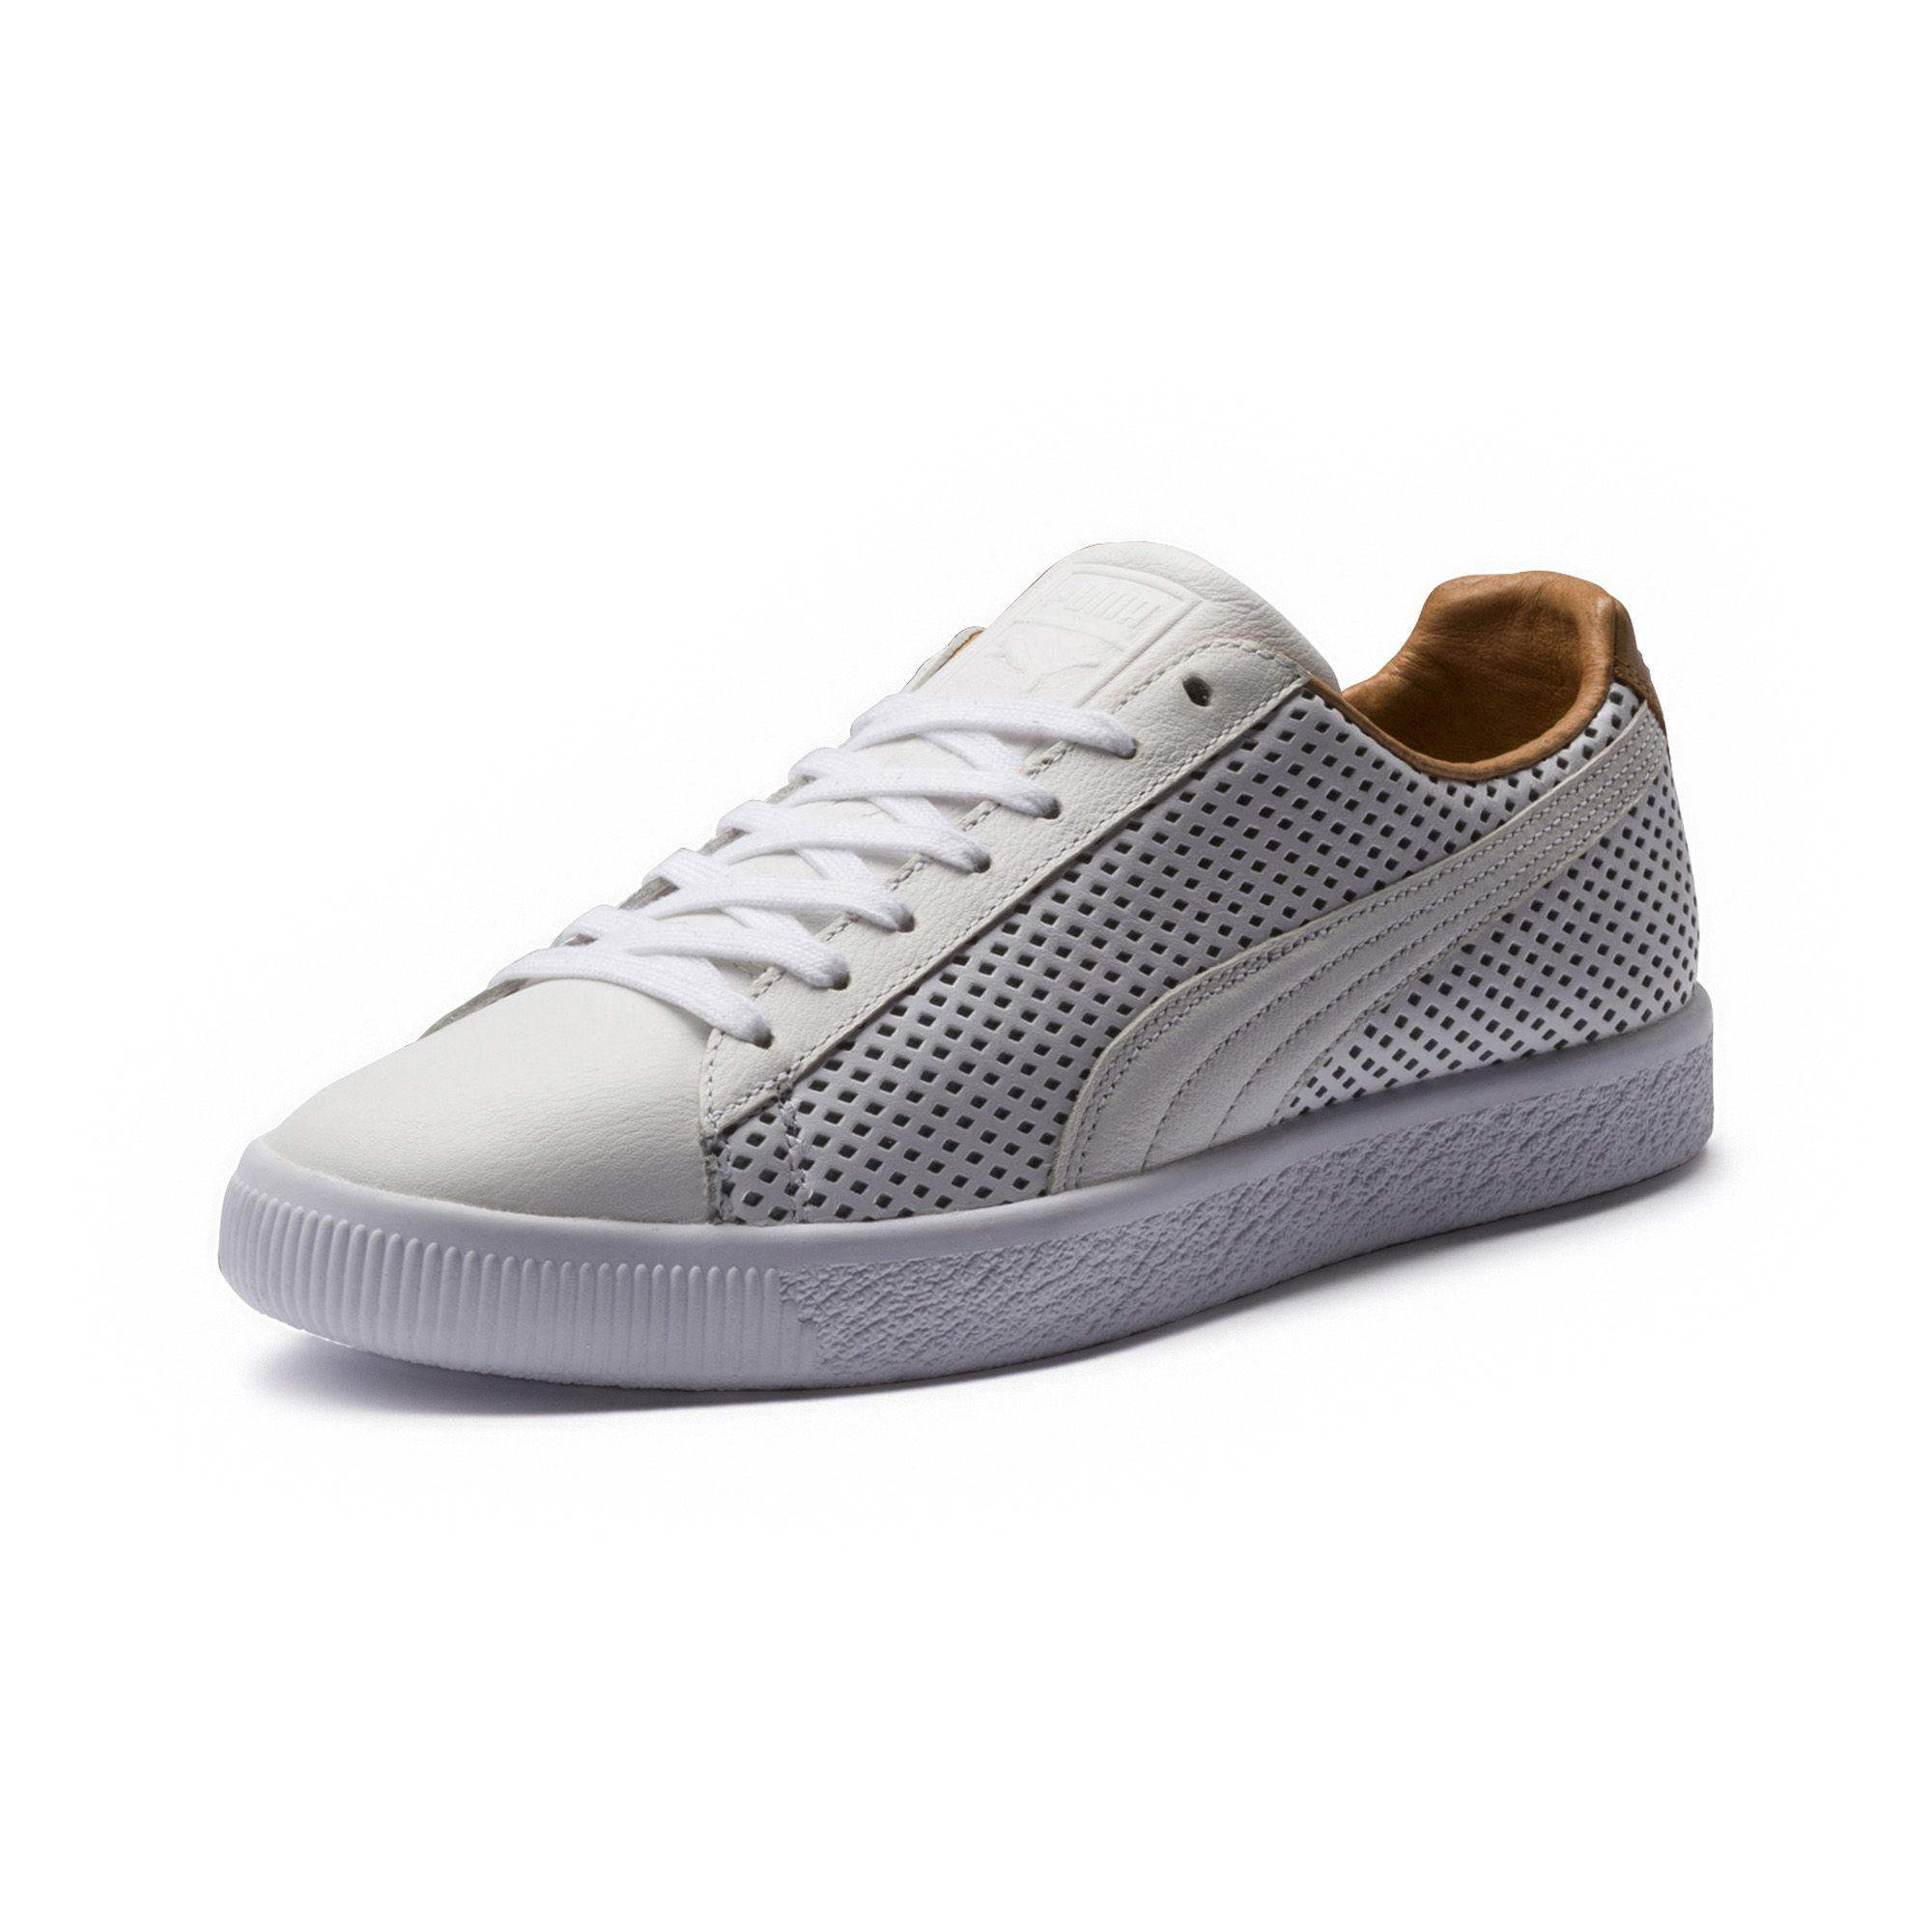 Puma Geselle Canvas Womens Casual Espradrilles Trainers Shoes Plimsolls Rose